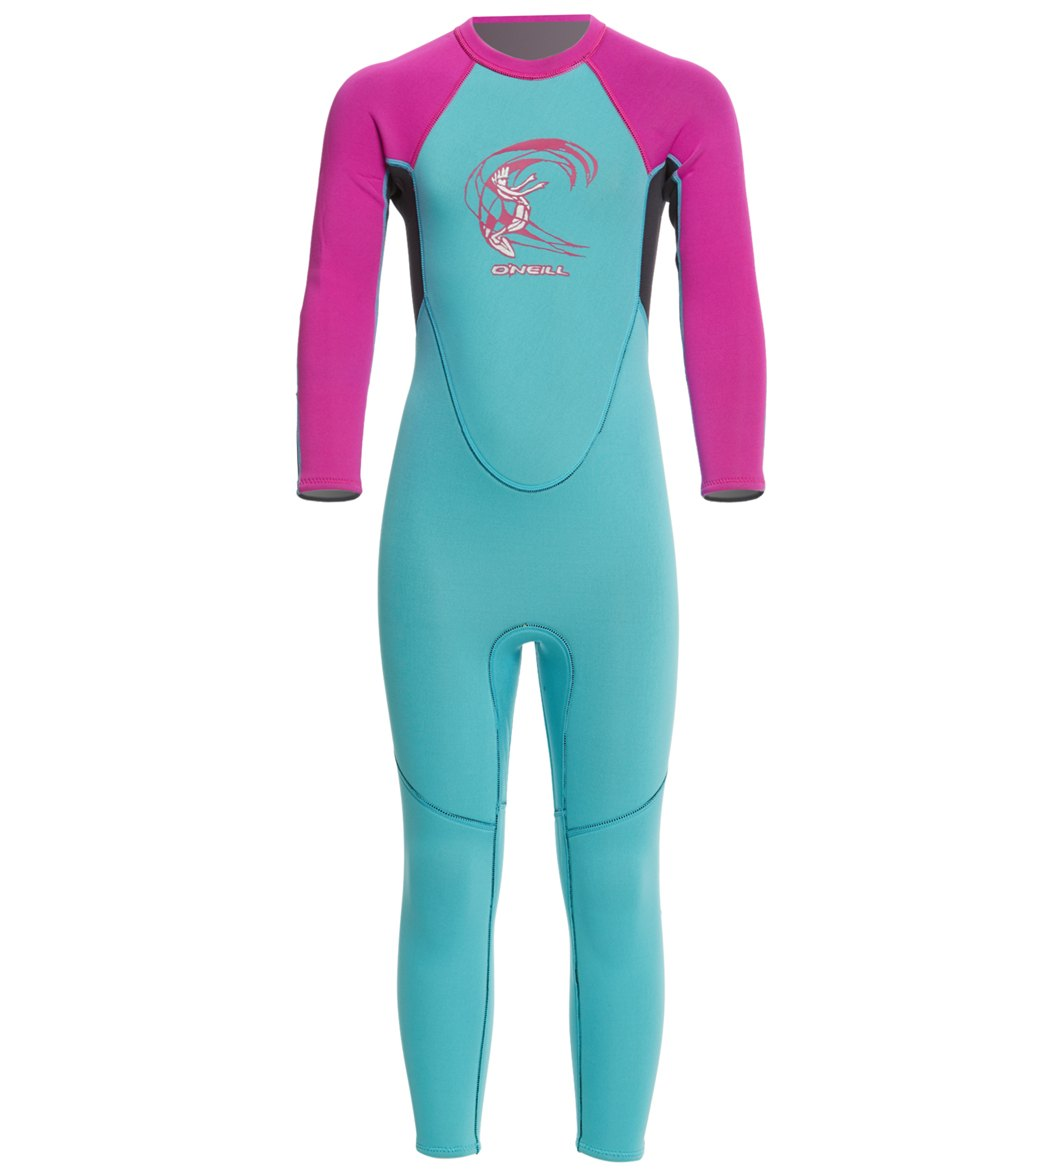 84d1a57323 O Neill Toddler 2MM Reactor Fullsuit Wetsuit at SwimOutlet.com - Free  Shipping